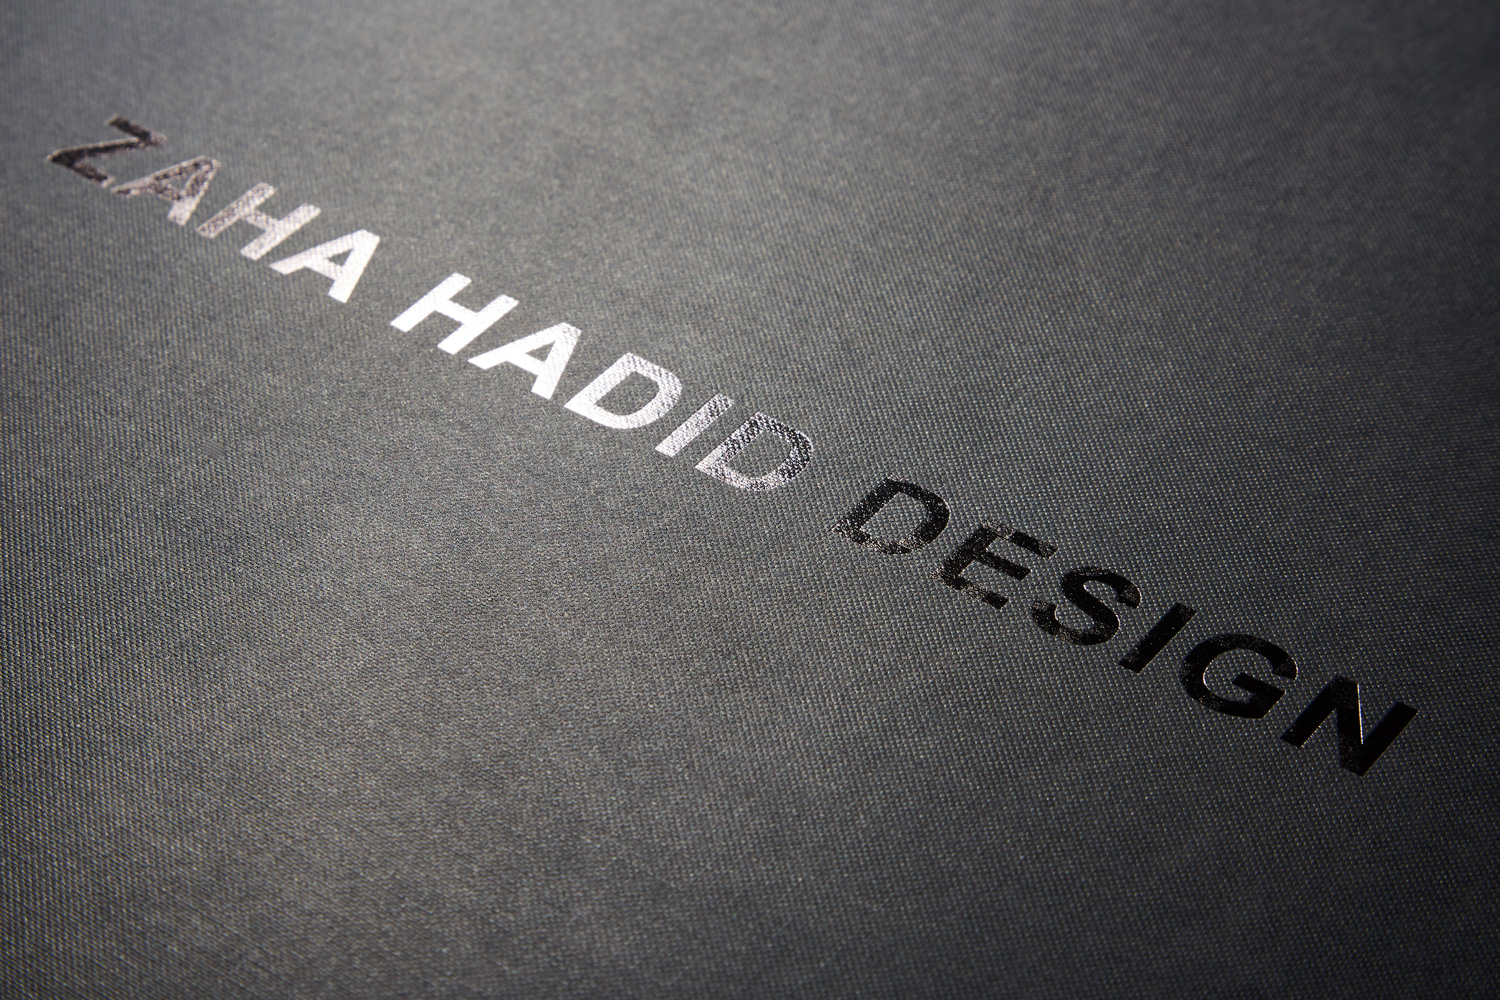 Progress Packaging Zaha Hadid Small Run Luxury Hand Made Foil Blocked Rigid Box Glassware